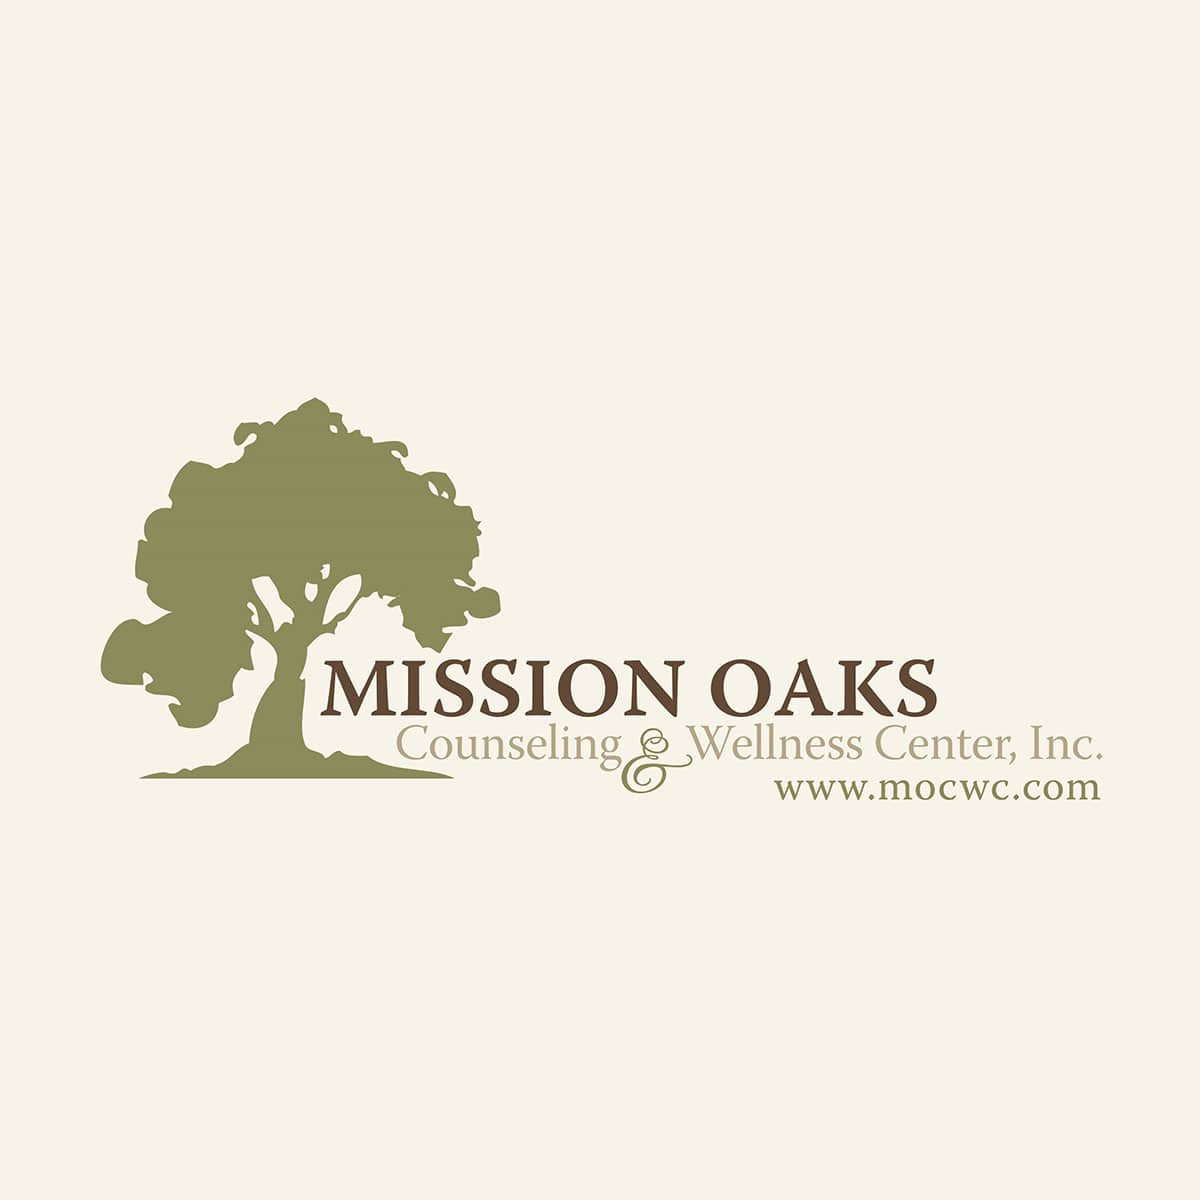 Mission Oaks Counseling & Wellness Center, Inc.